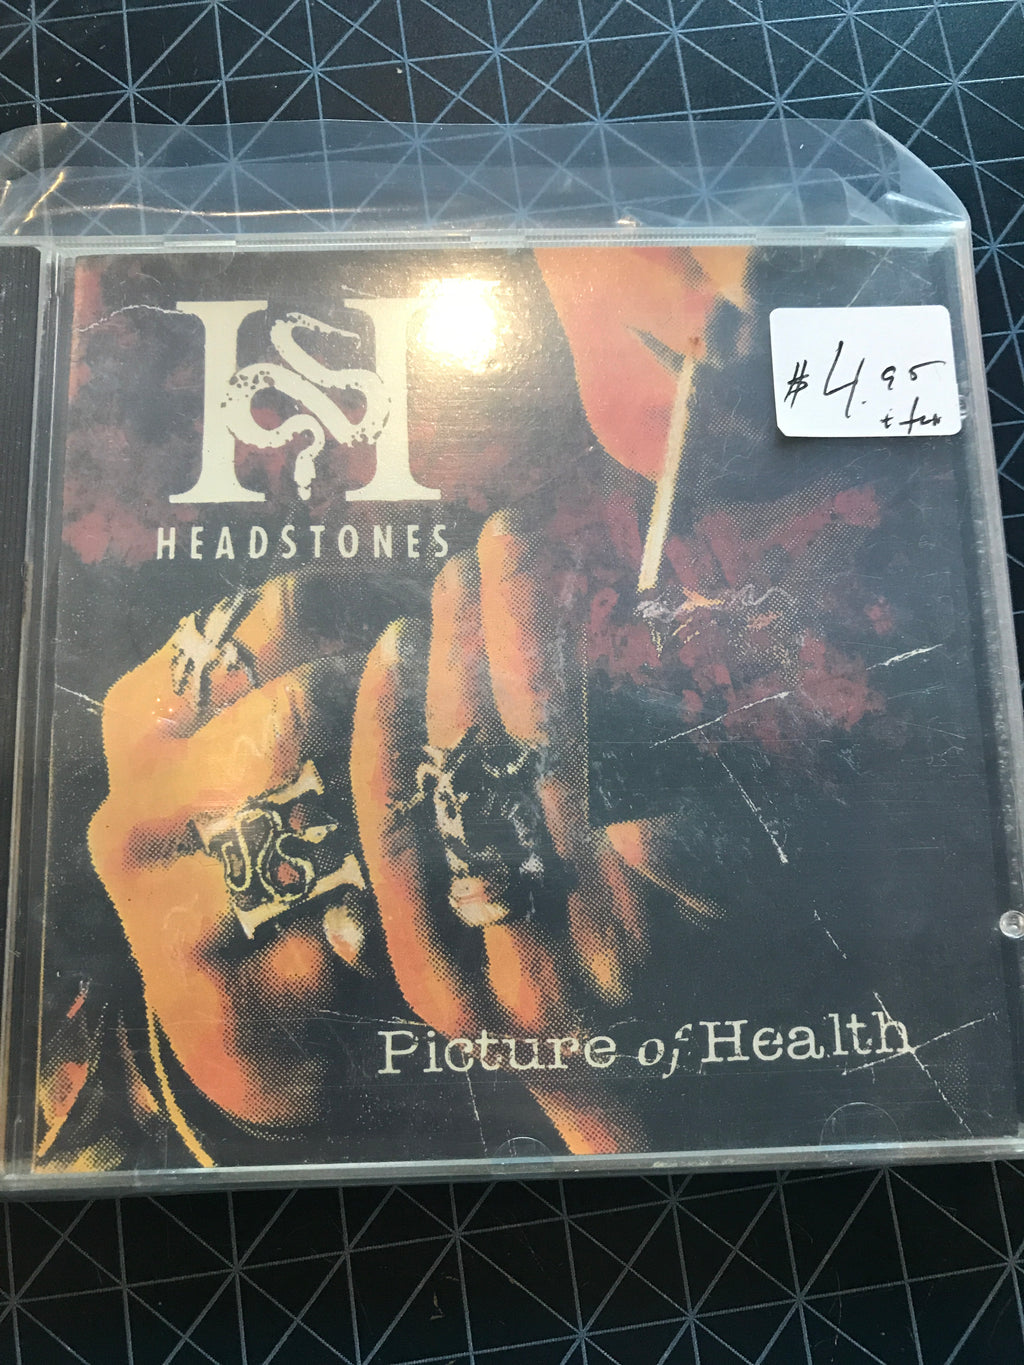 Headstones - Picture Of Health - Used CD